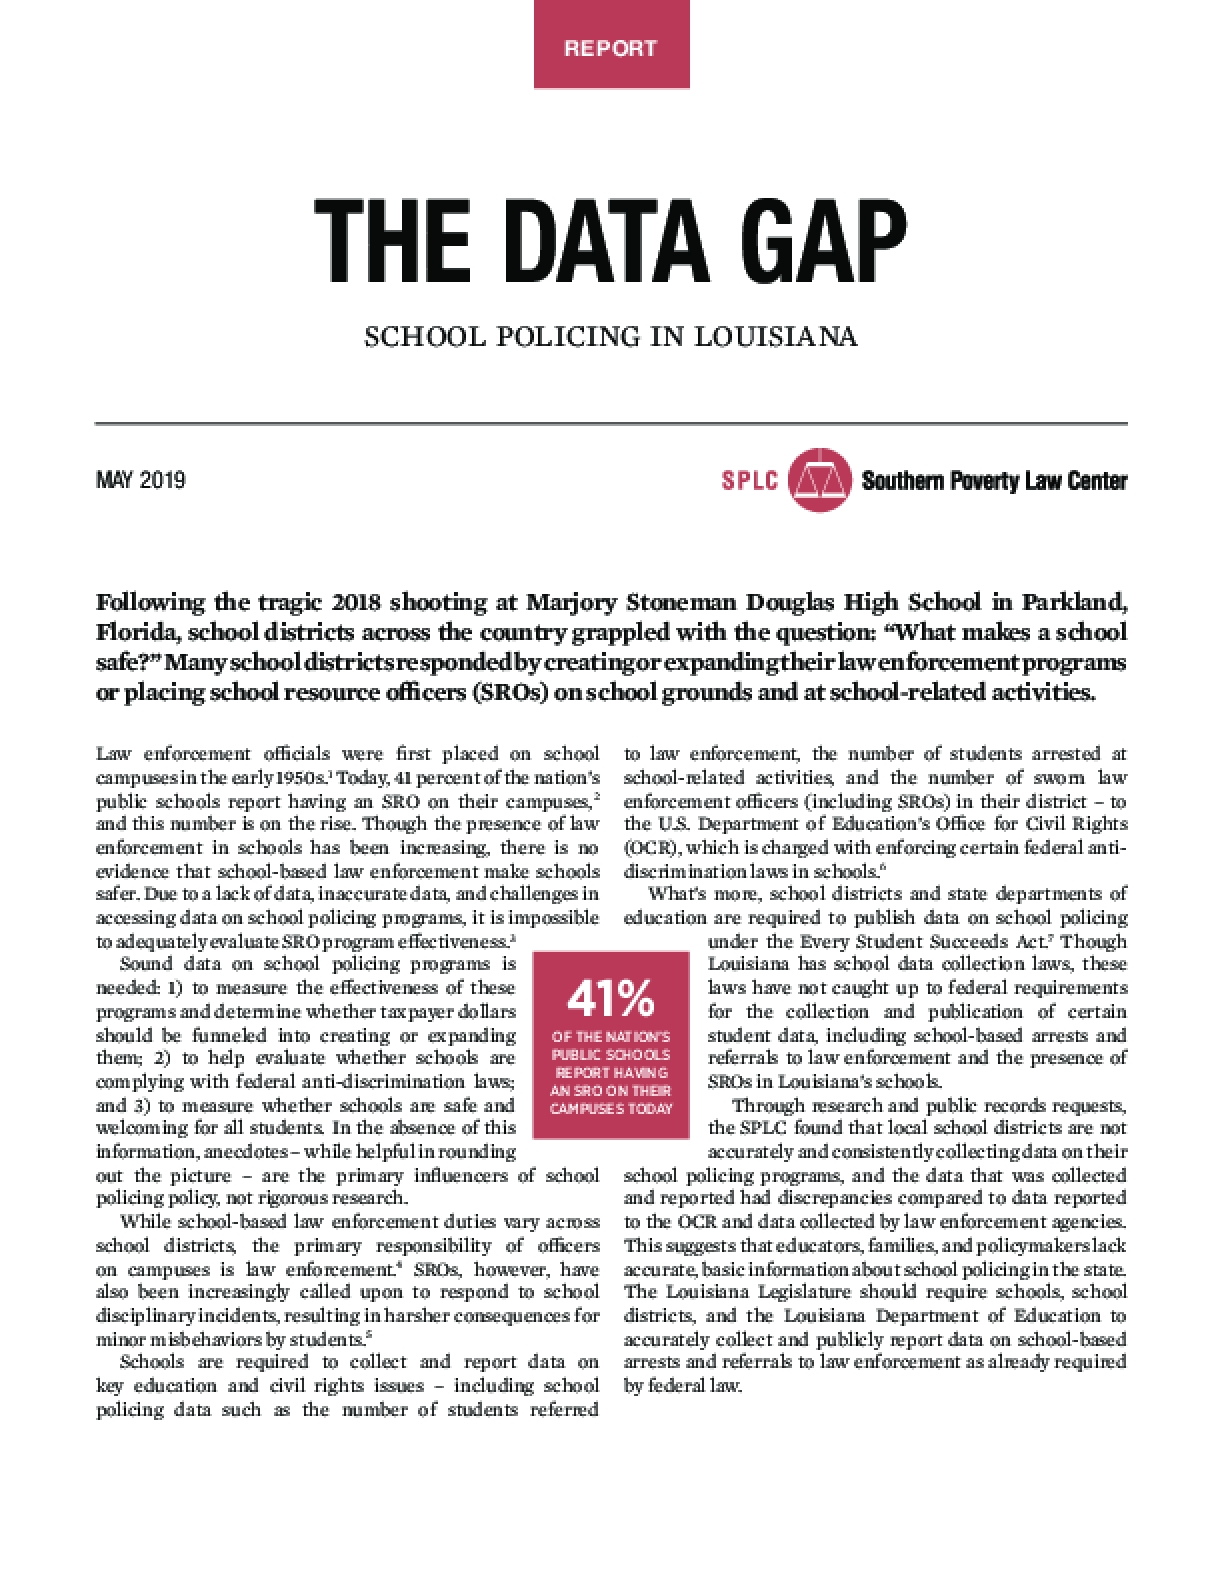 The Data Gap: School Policing In Louisiana